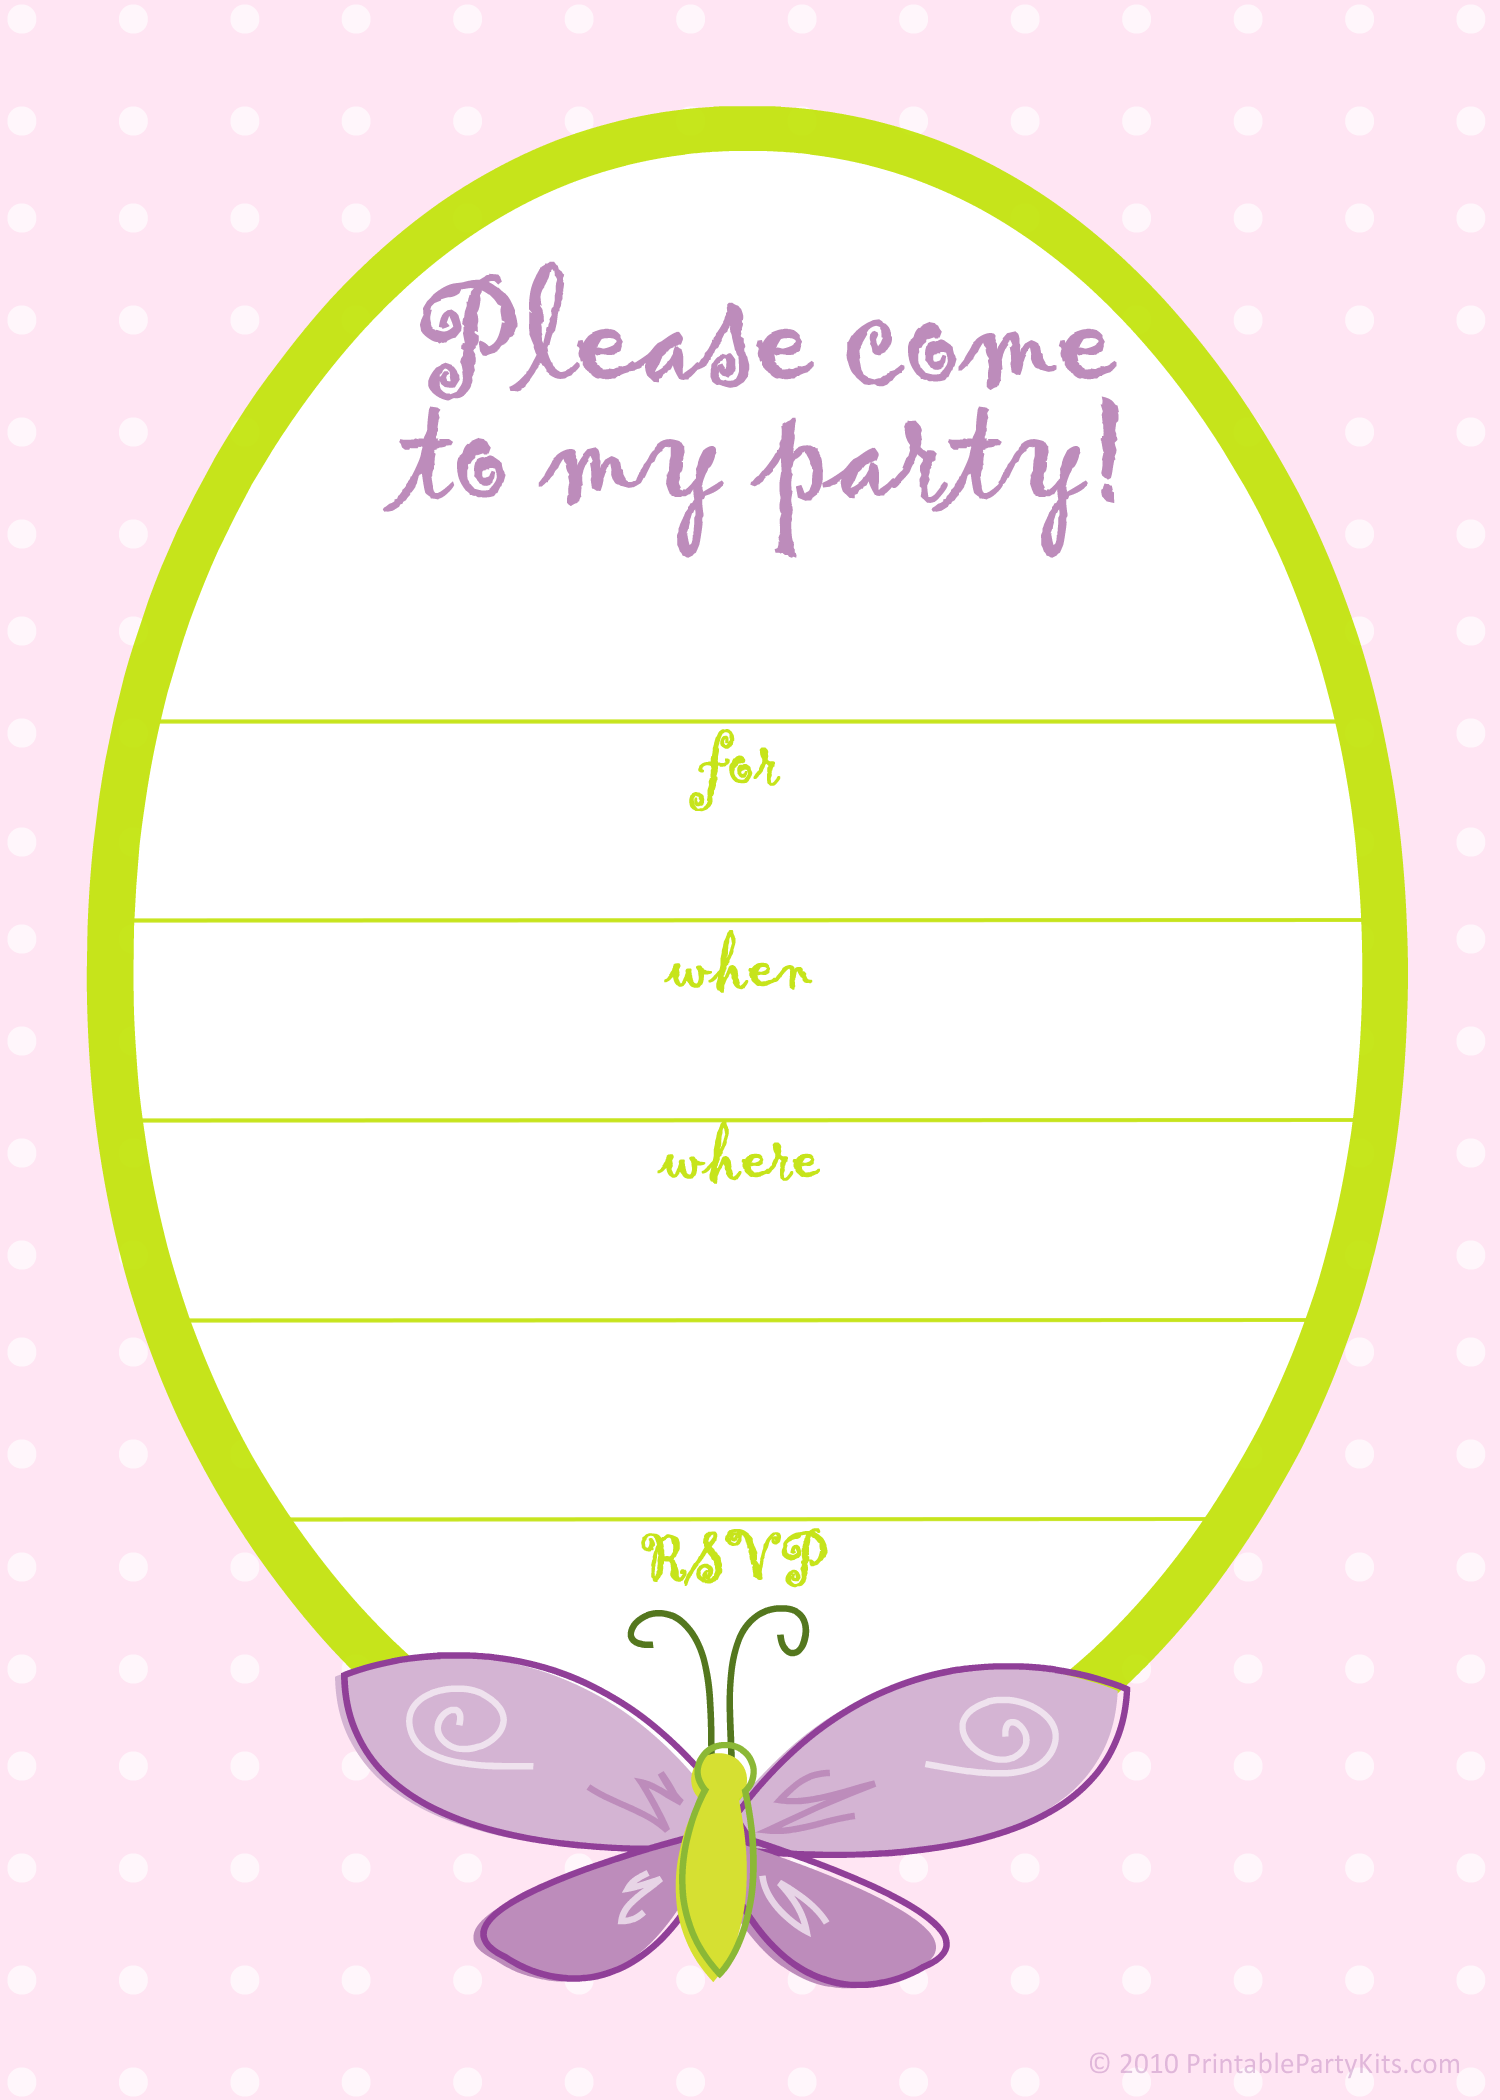 Free Printable Butterfly Party Invitation Template Birthday Party Invitations Free Birthday Party Invitations Printable Birthday Invitation Card Template